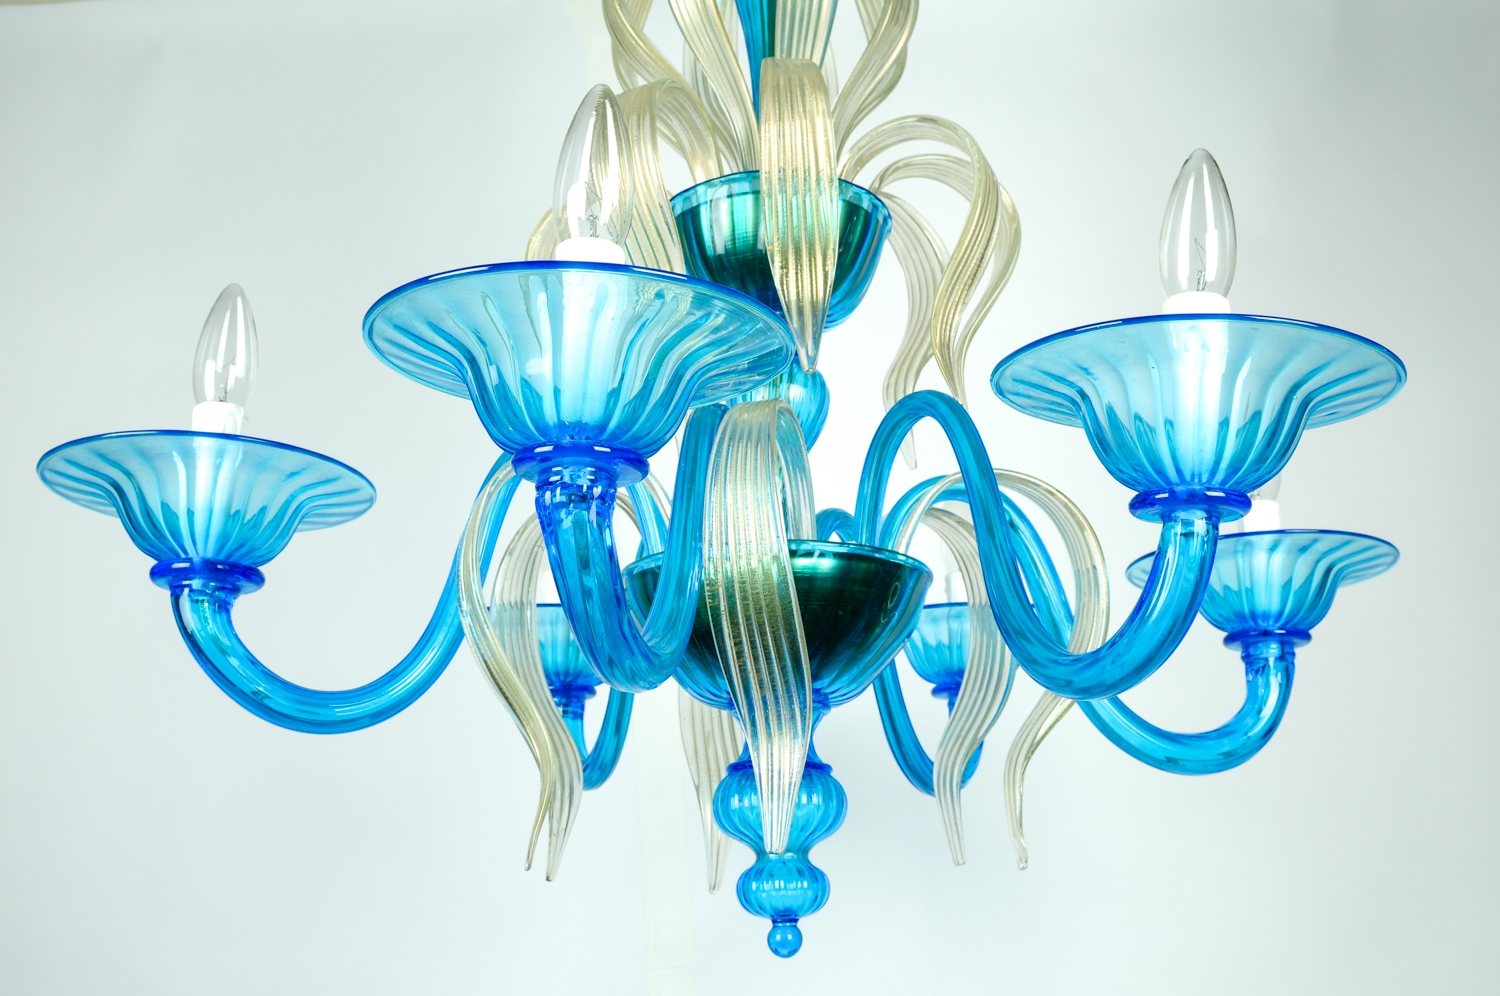 Venetian Handblown Six Arms Turquoise With Gold Flecks Chandelier Intended For Turquoise And Gold Chandeliers (View 3 of 13)